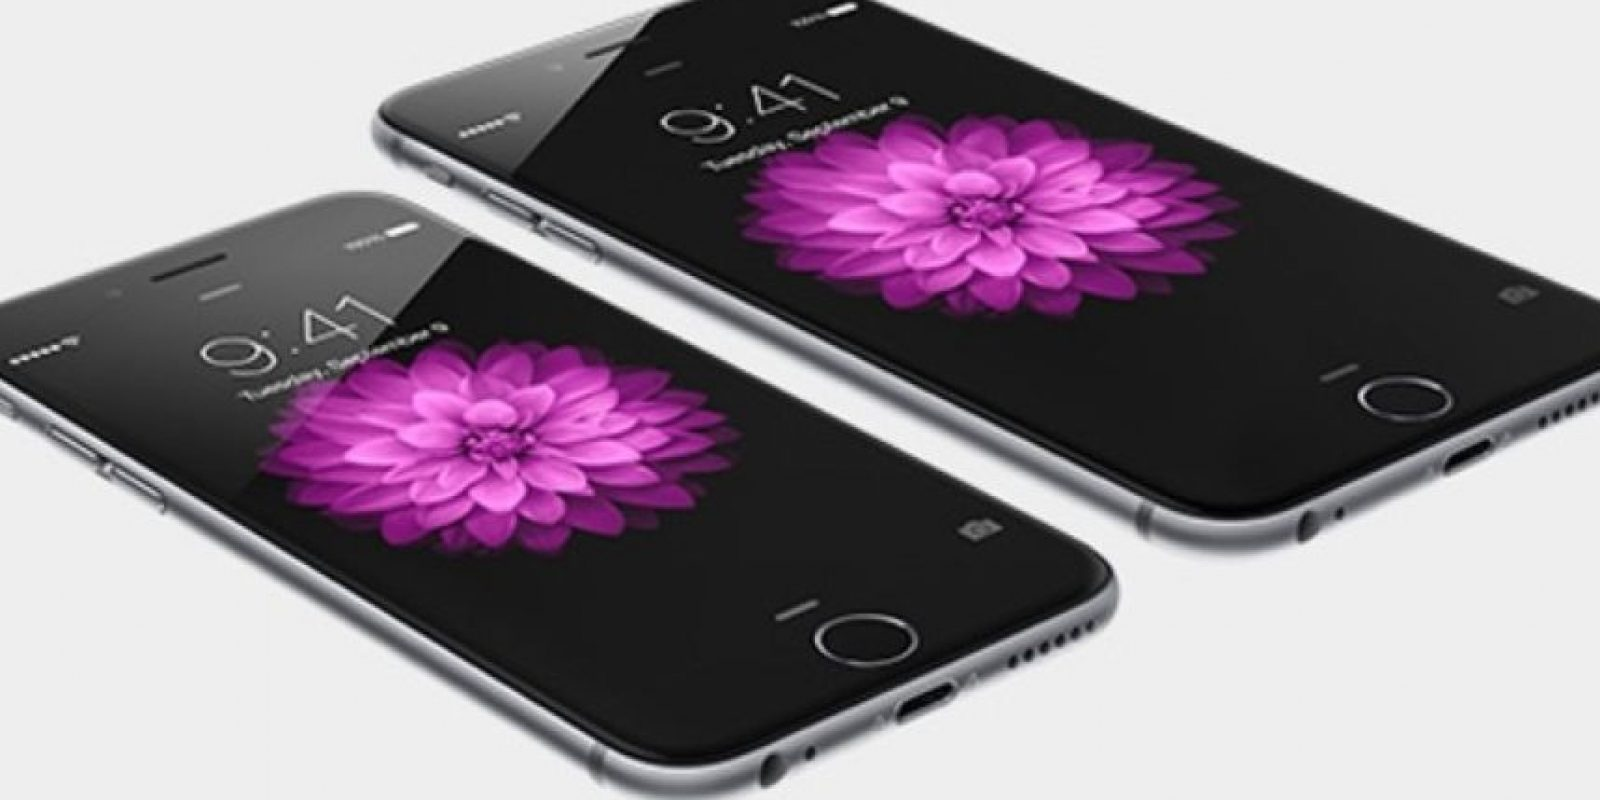 La pantalla del iPhone 6 y iPhone 6 Plus. Foto: Apple